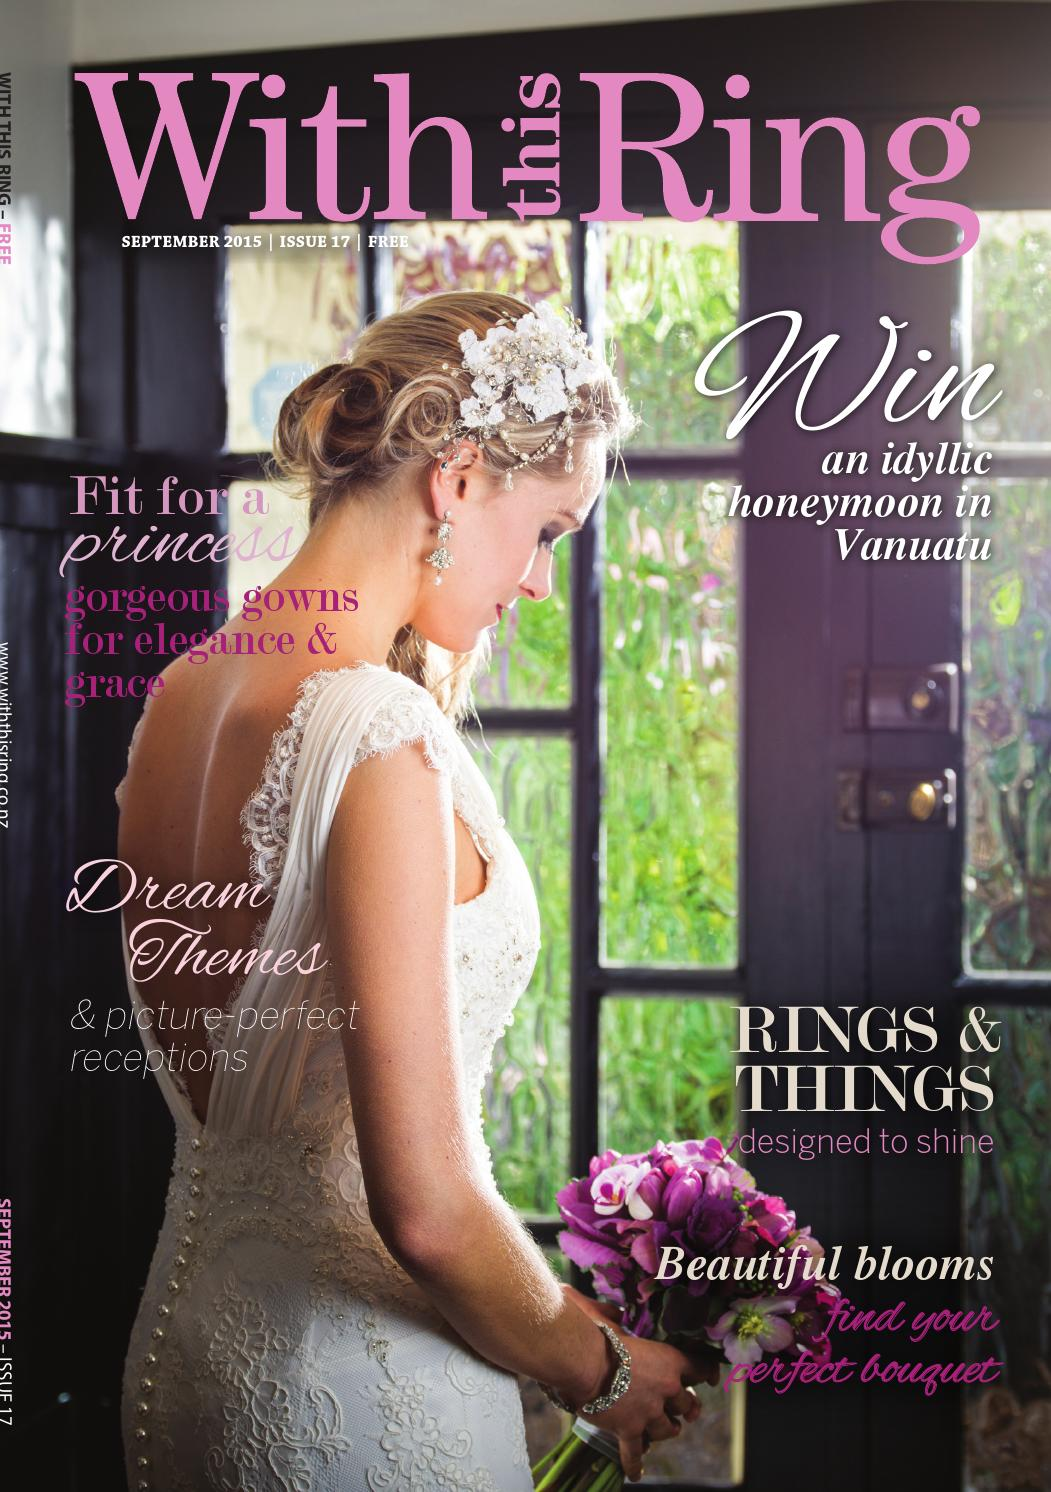 With This Ring 11 09 15 By Local Newspapers Issuu